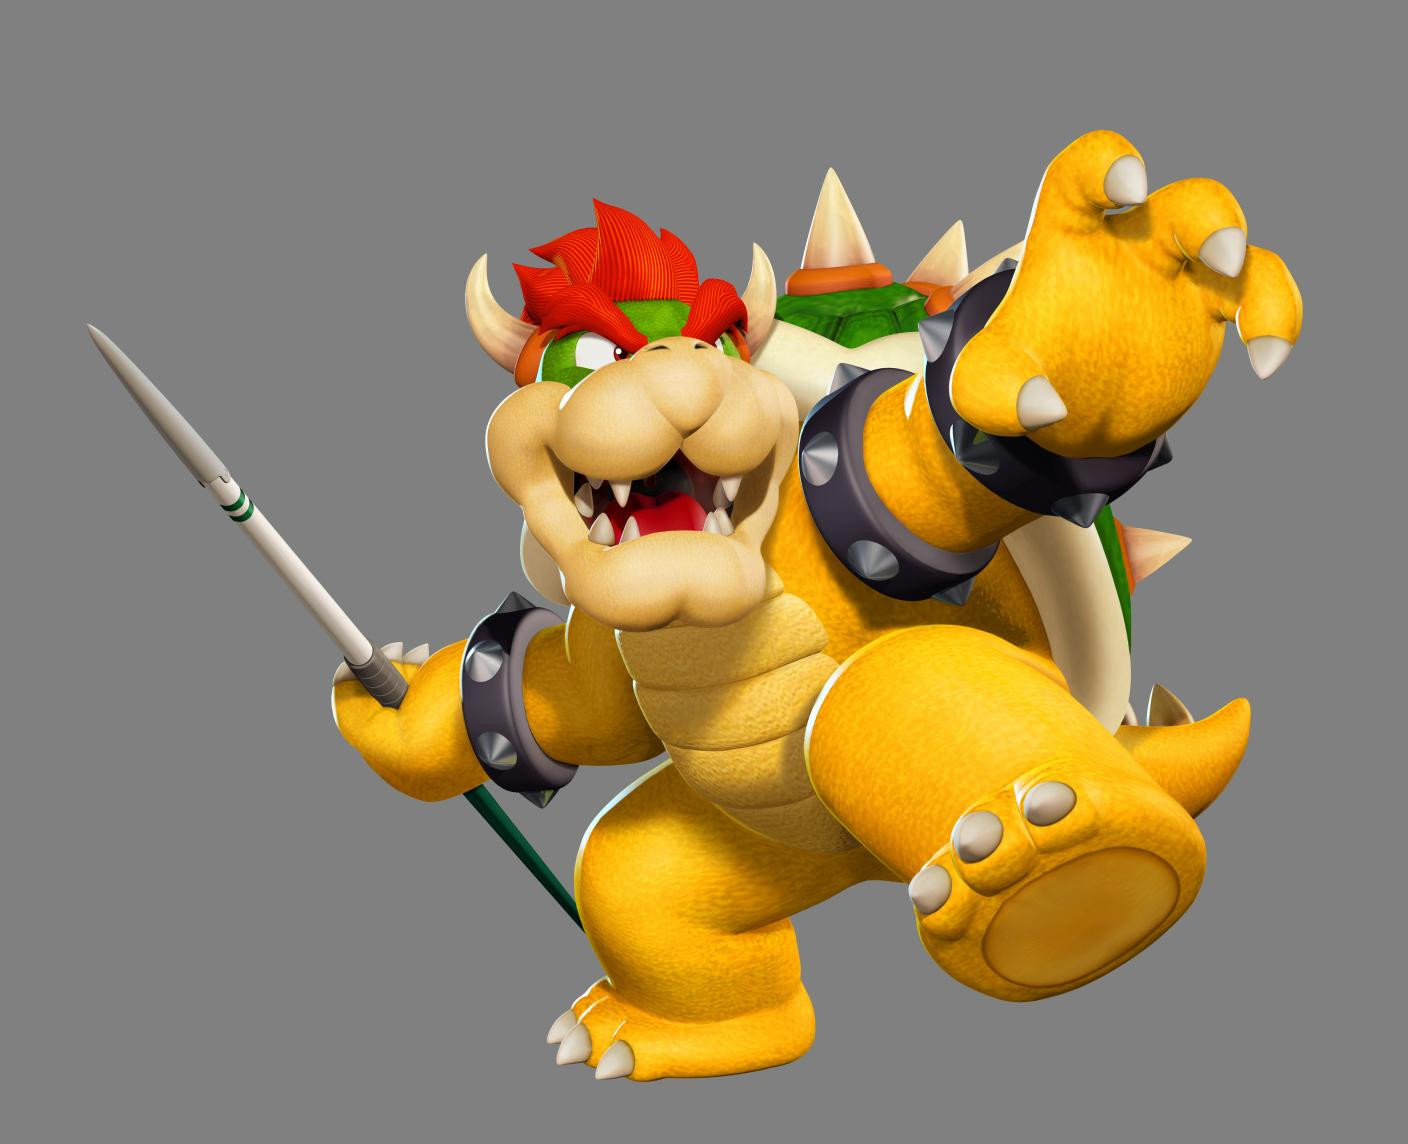 Instagram pictures for $100k, Nintendo's Bowser gets a promotion: Weird business news